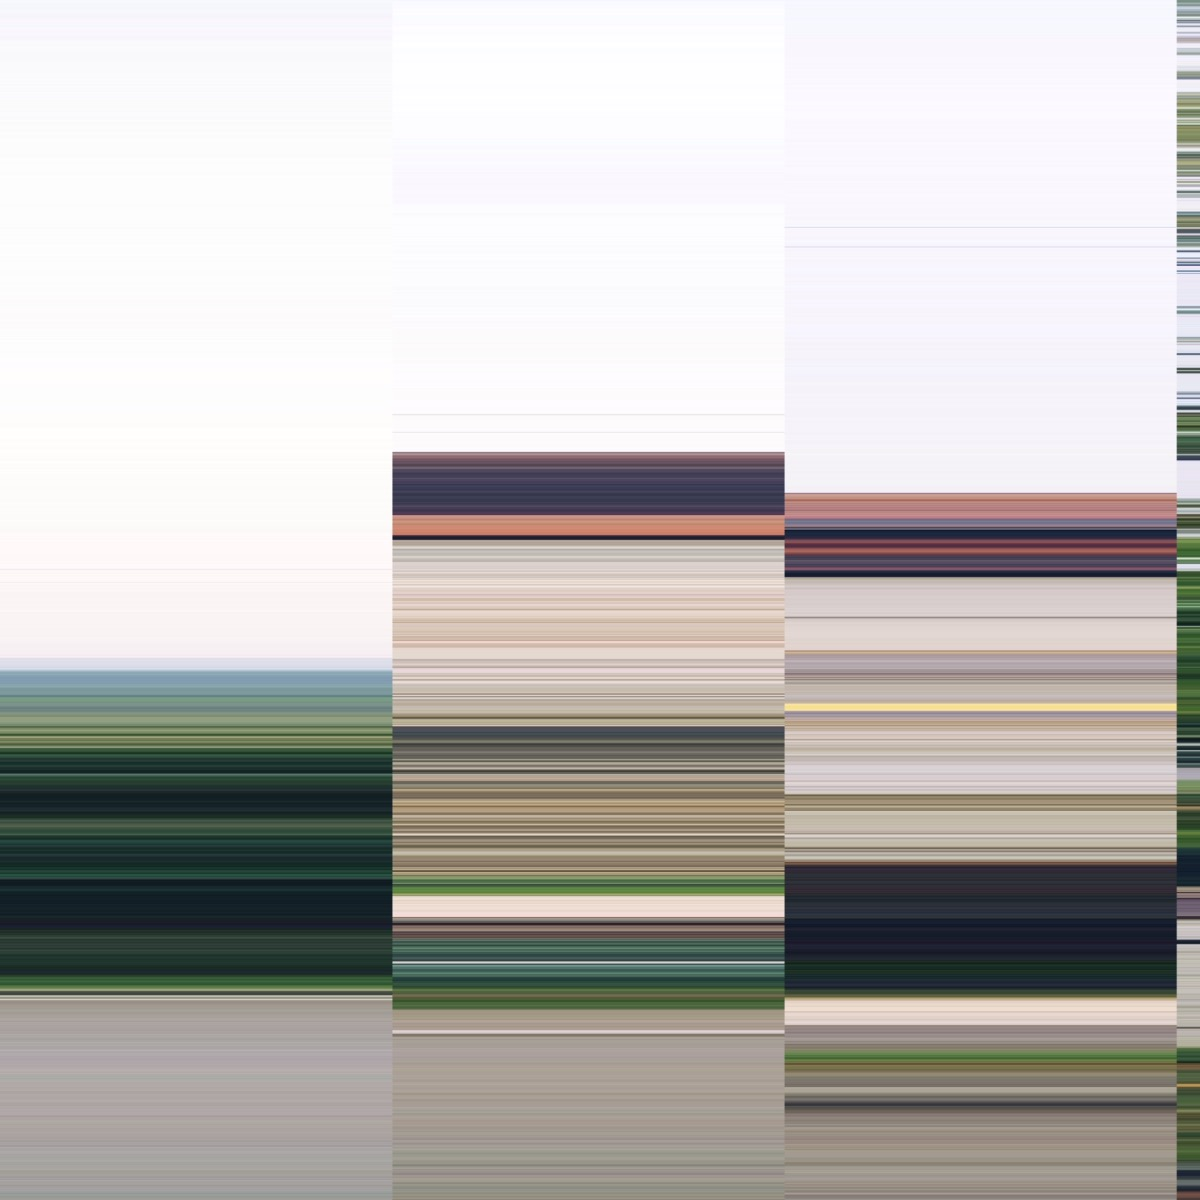 Some horizontal lines in green and brown autumn colours, arraged in three divisions.